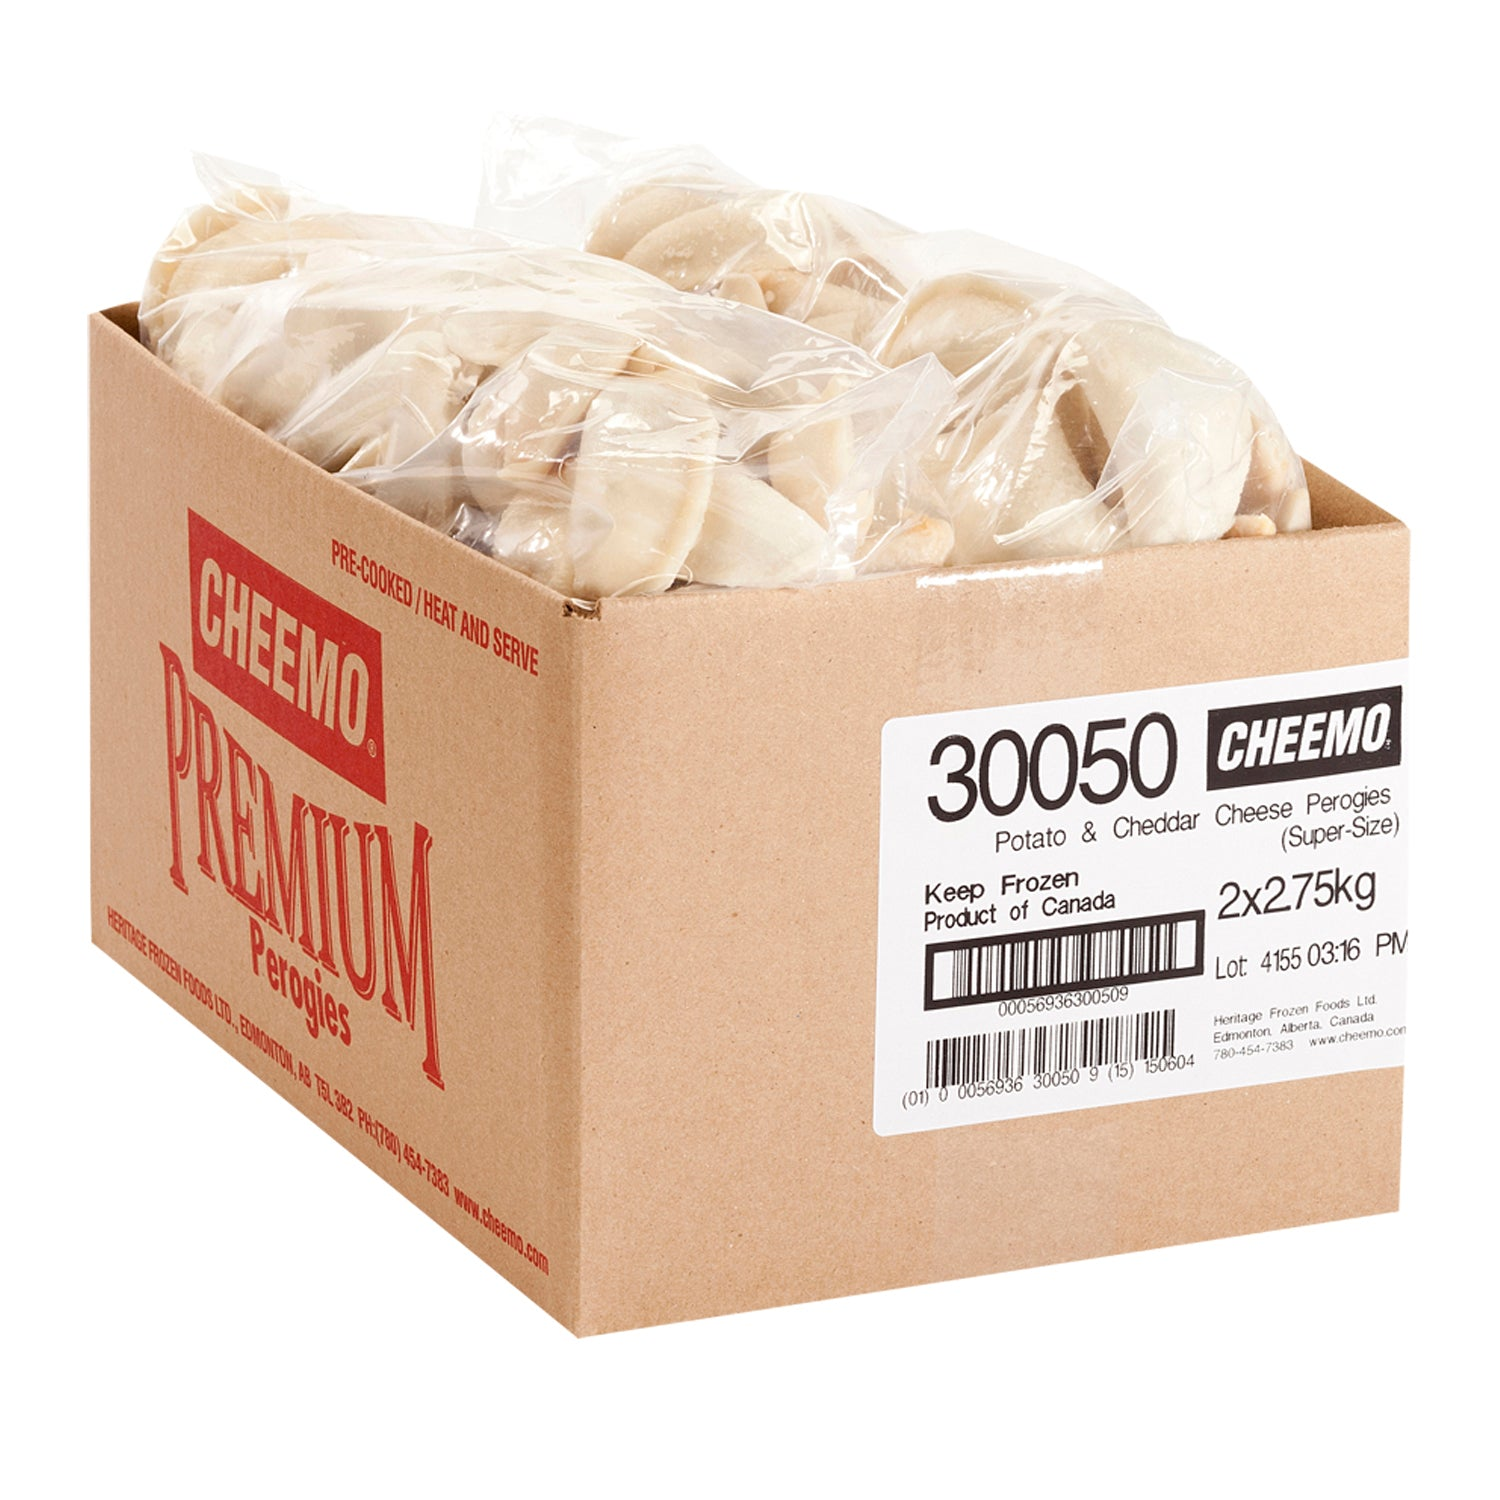 Cheemo Frozen Potato and Cheese Perogies 5.5 kg - 1 Pack [$3.09/kg]